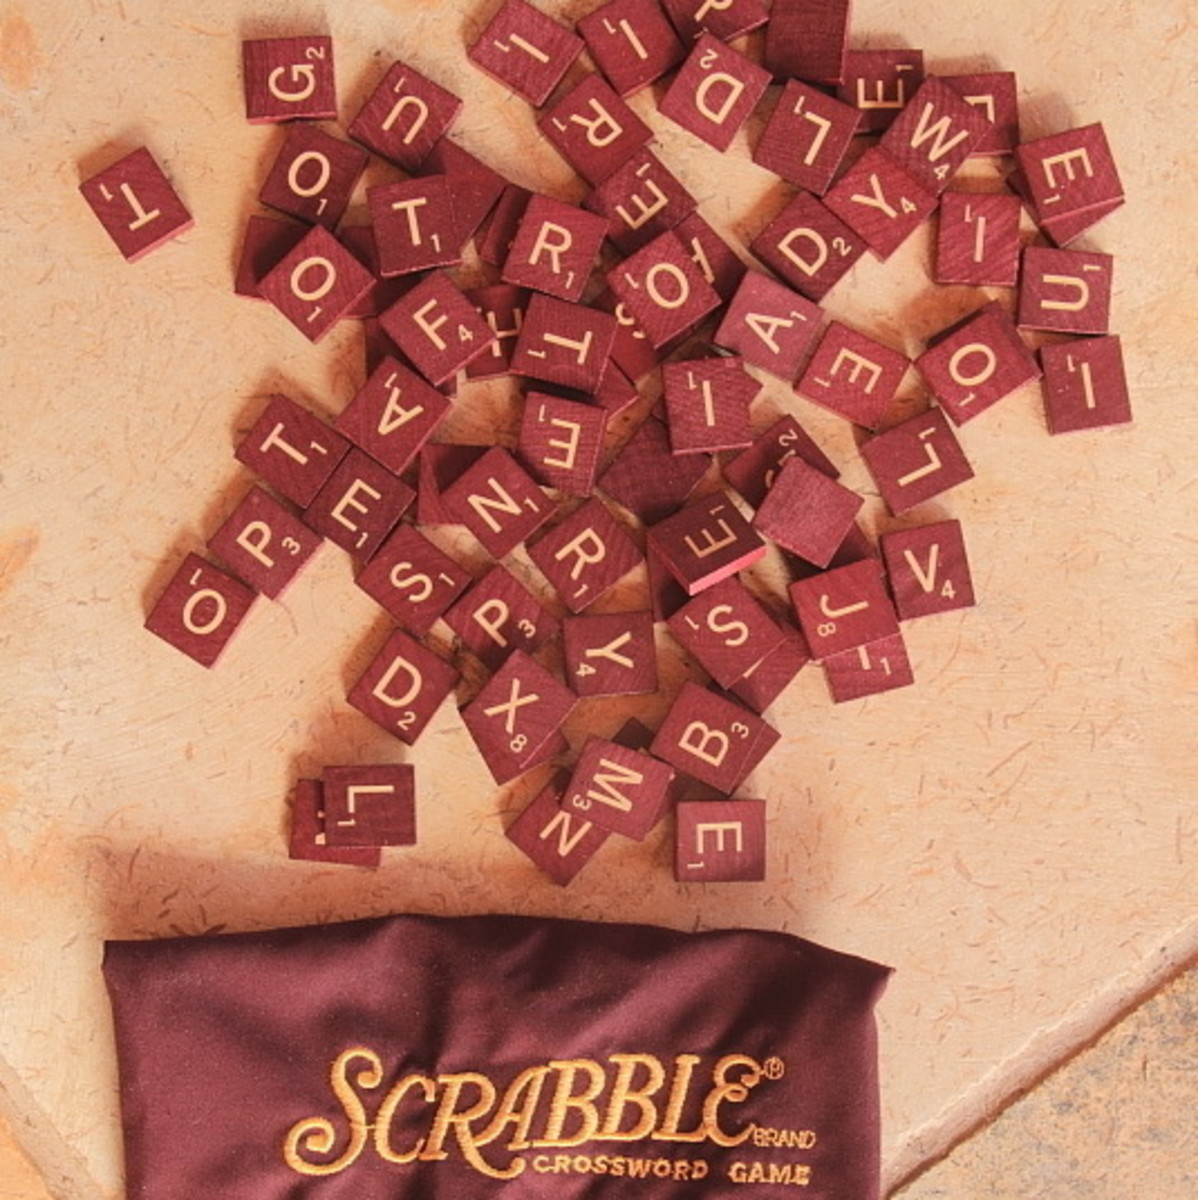 Scrabble Hints and Tips: How to Get Better at Playing Scrabble